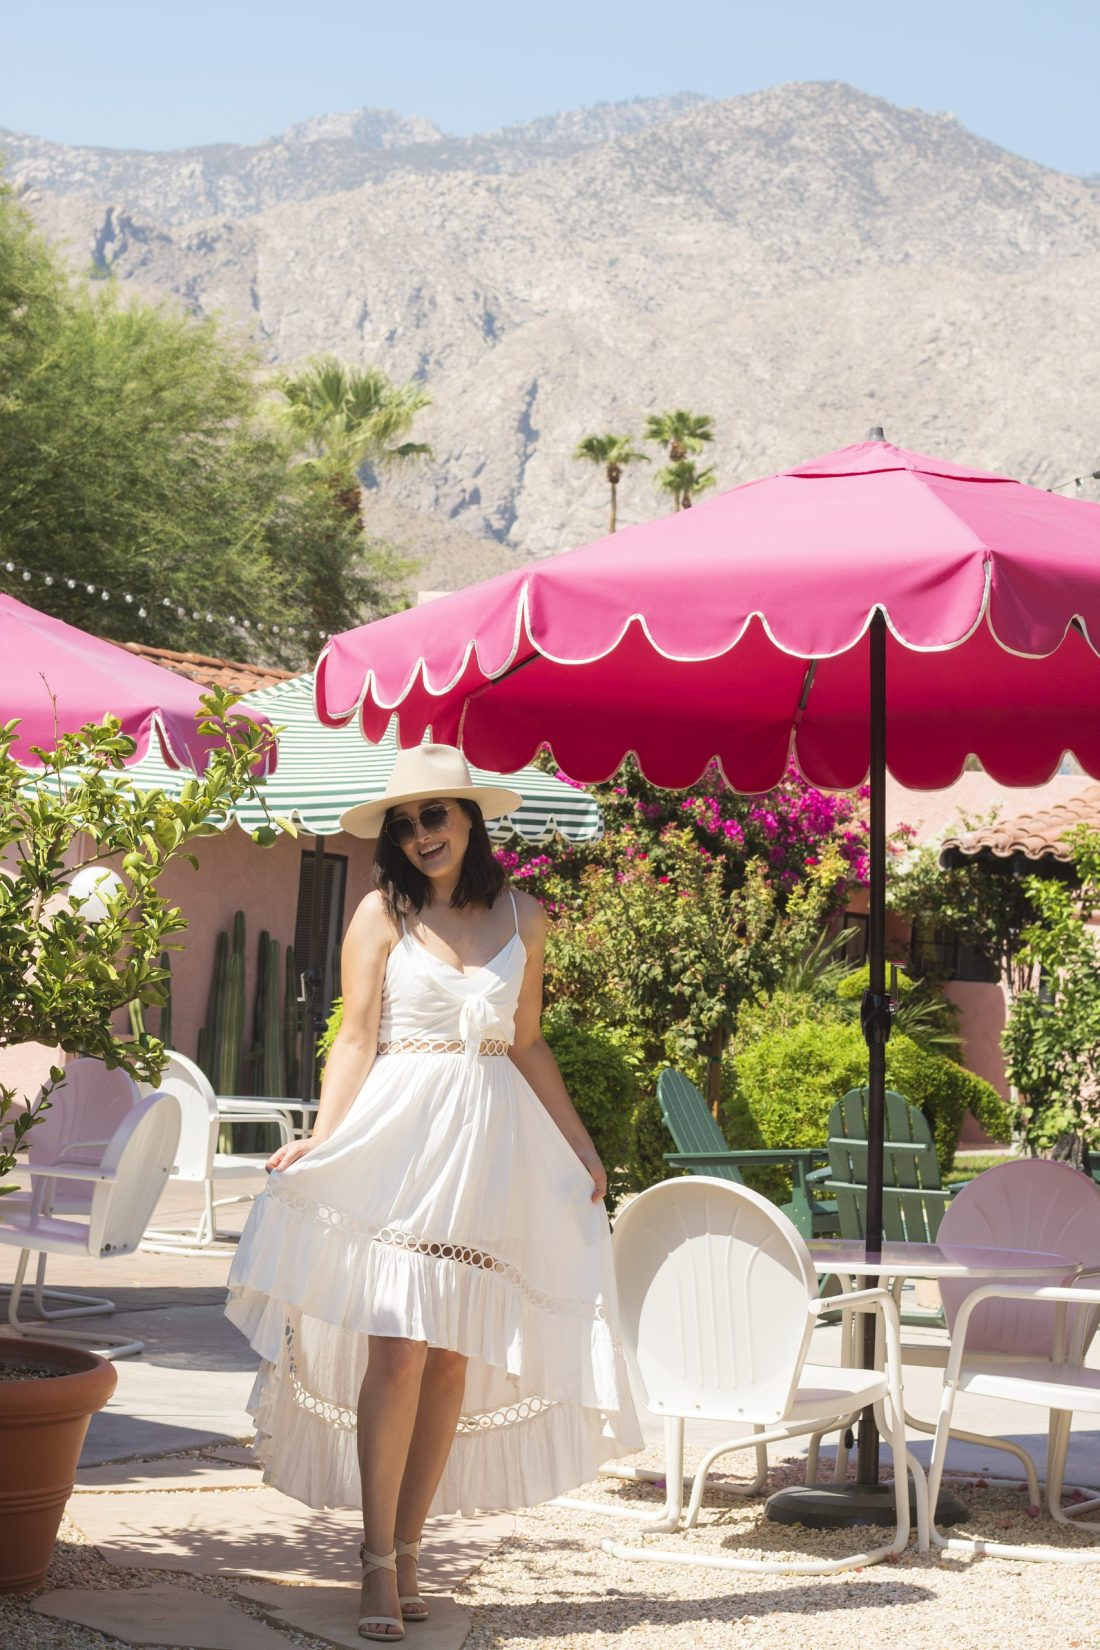 Les Cactus Hotel in Palm Springs | A God Hue